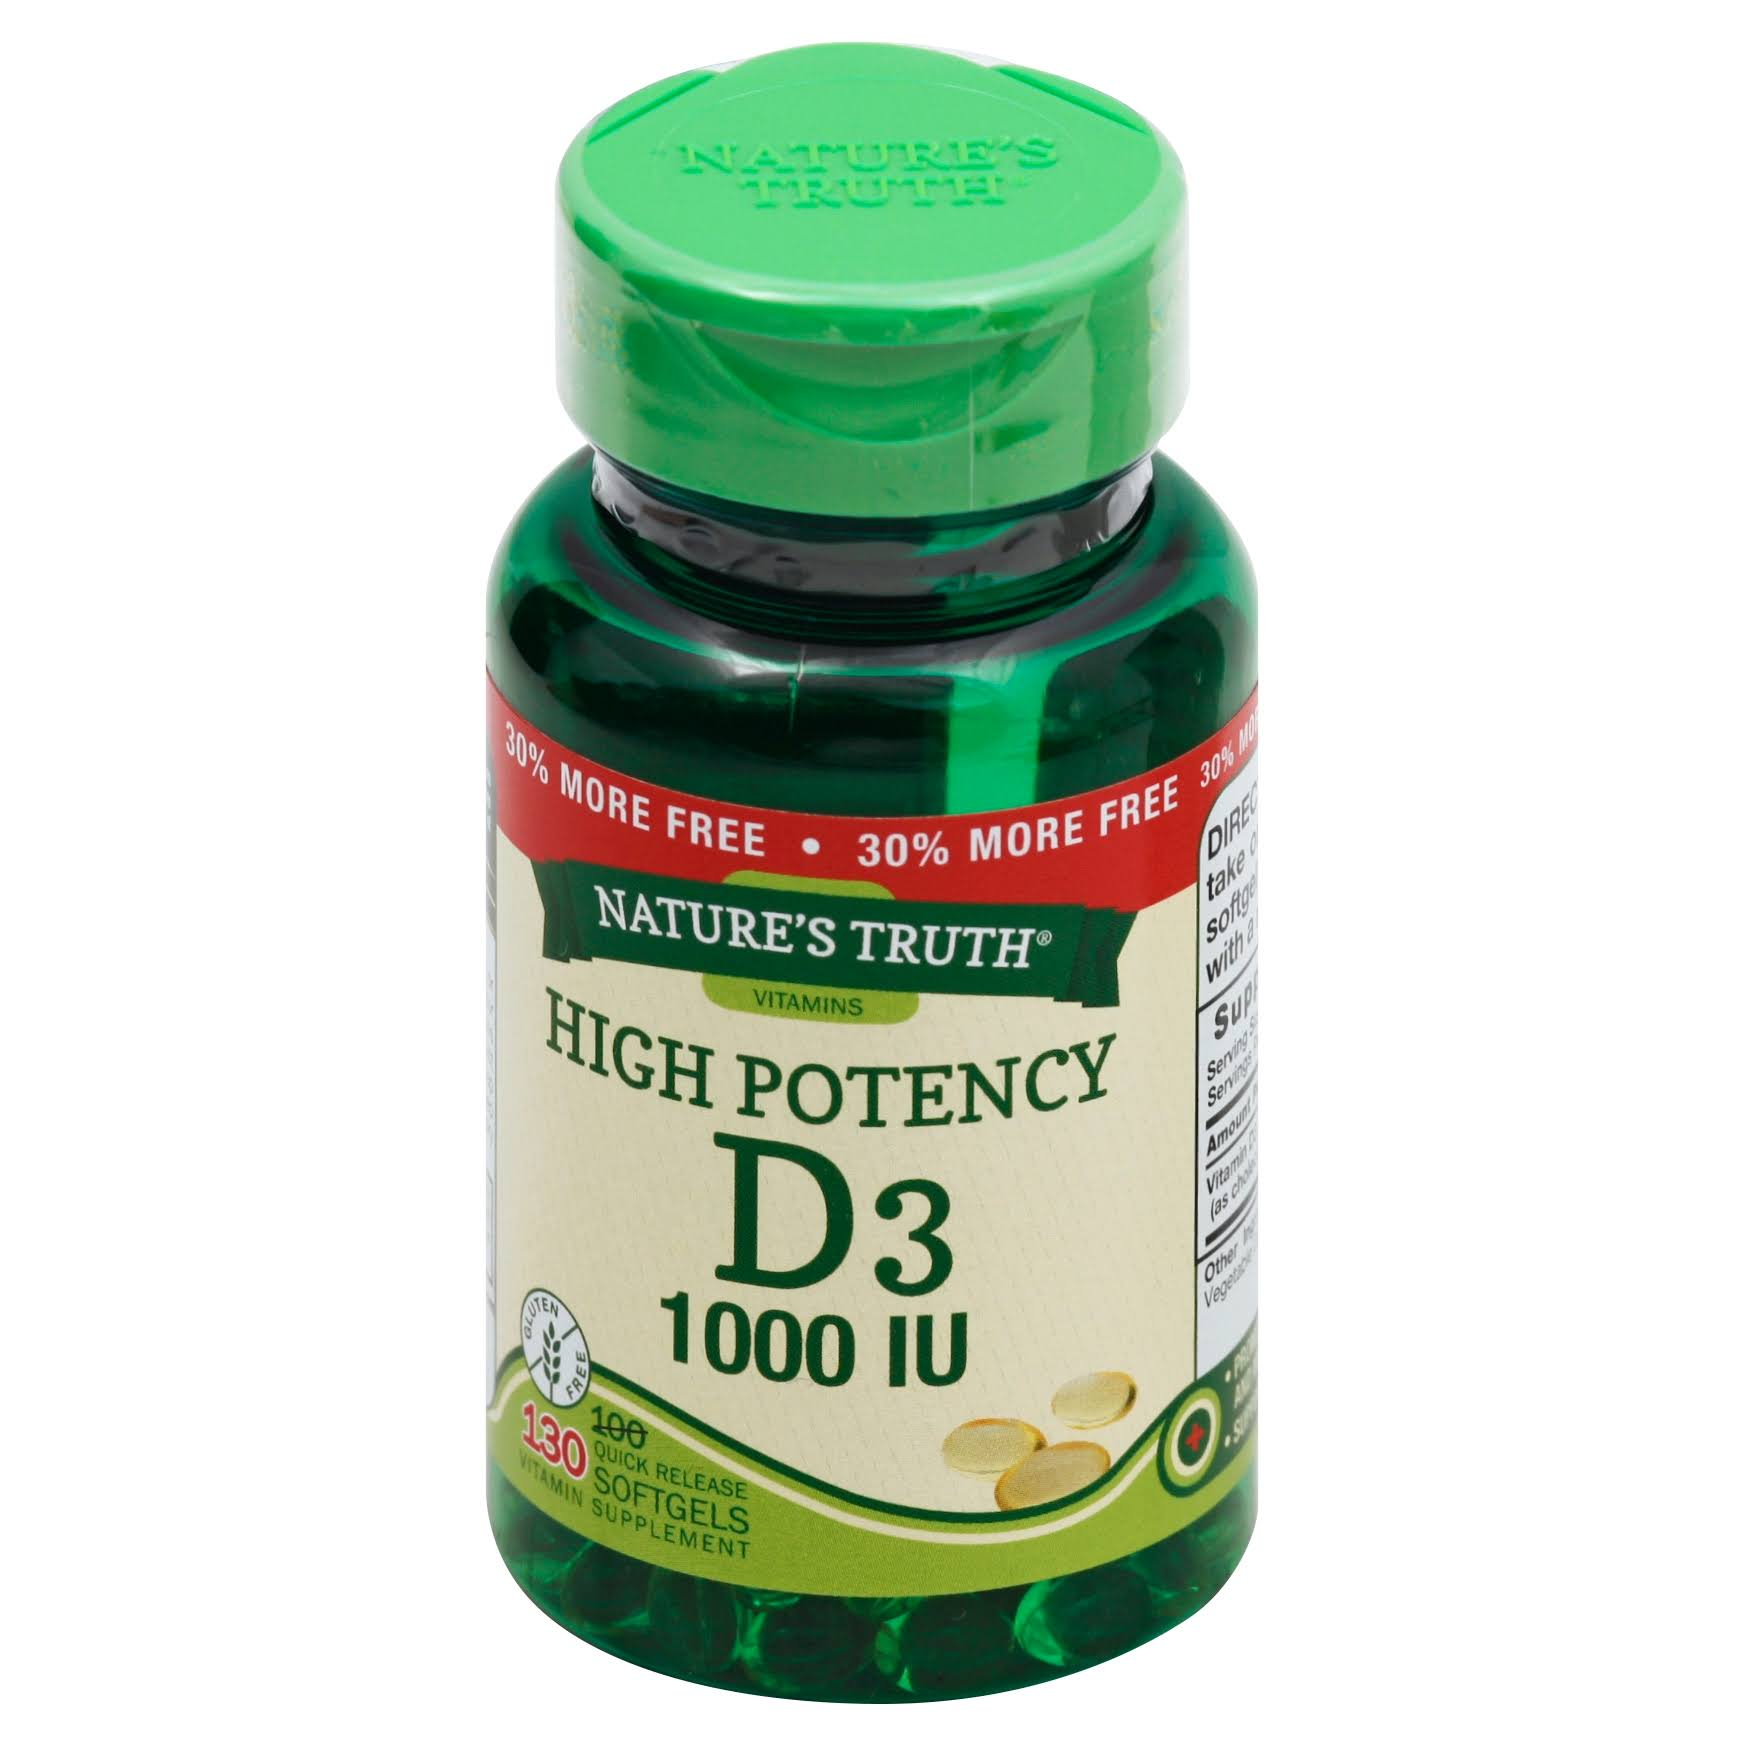 Nature's Truth High Potency Vitamin D3 1000 IU Quick Release Softgels Supplements - 130ct